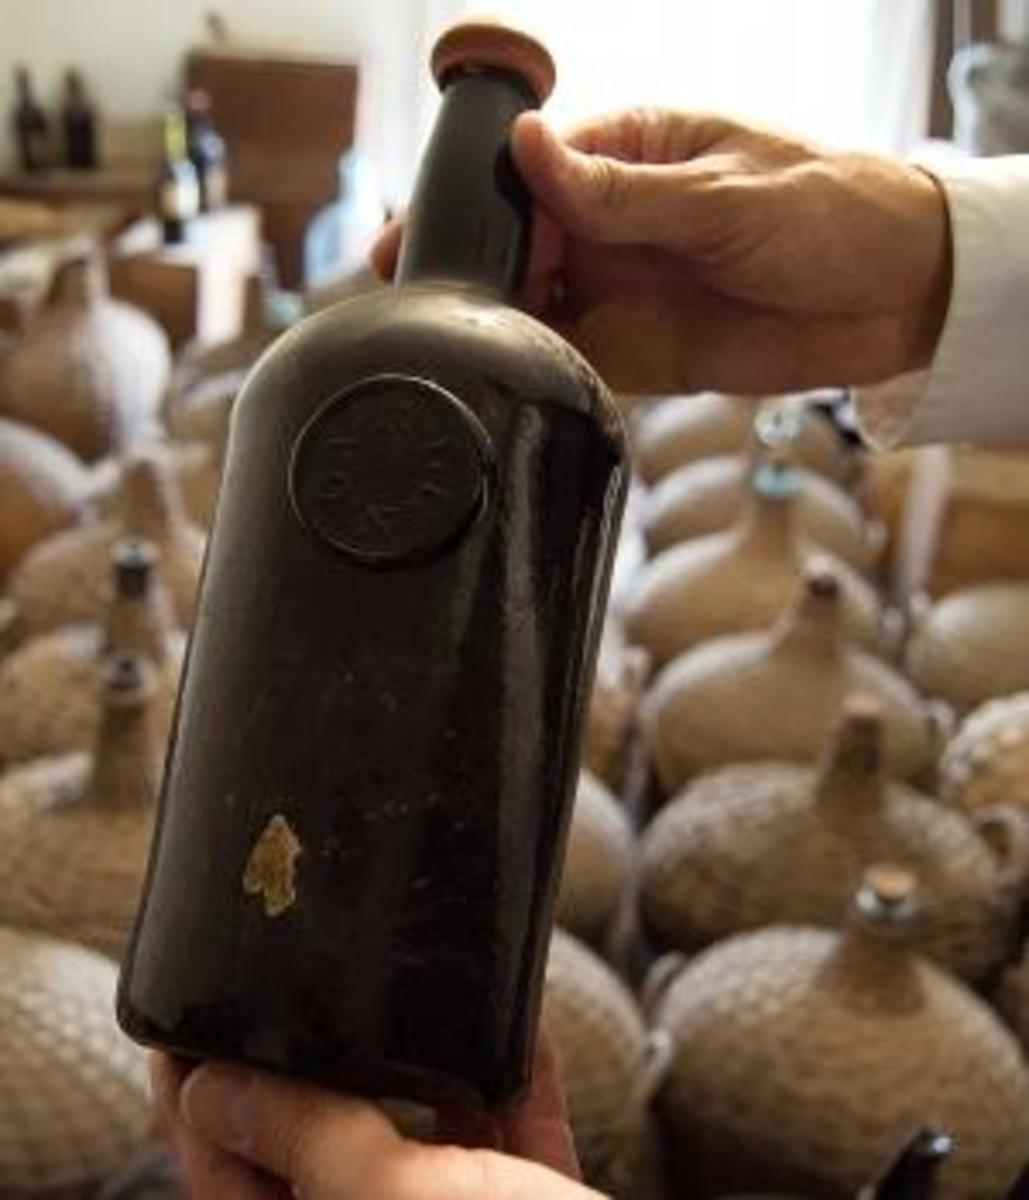 A six-month restoration project at Liberty Hall Museum in Union, N.J., uncovered three cases of Madeira wine dating to 1796 and about 42 demijohns from the 1820s while restoring its wine cellar. (Credit: David J. Del Grande/NJ Advance Media via AP)